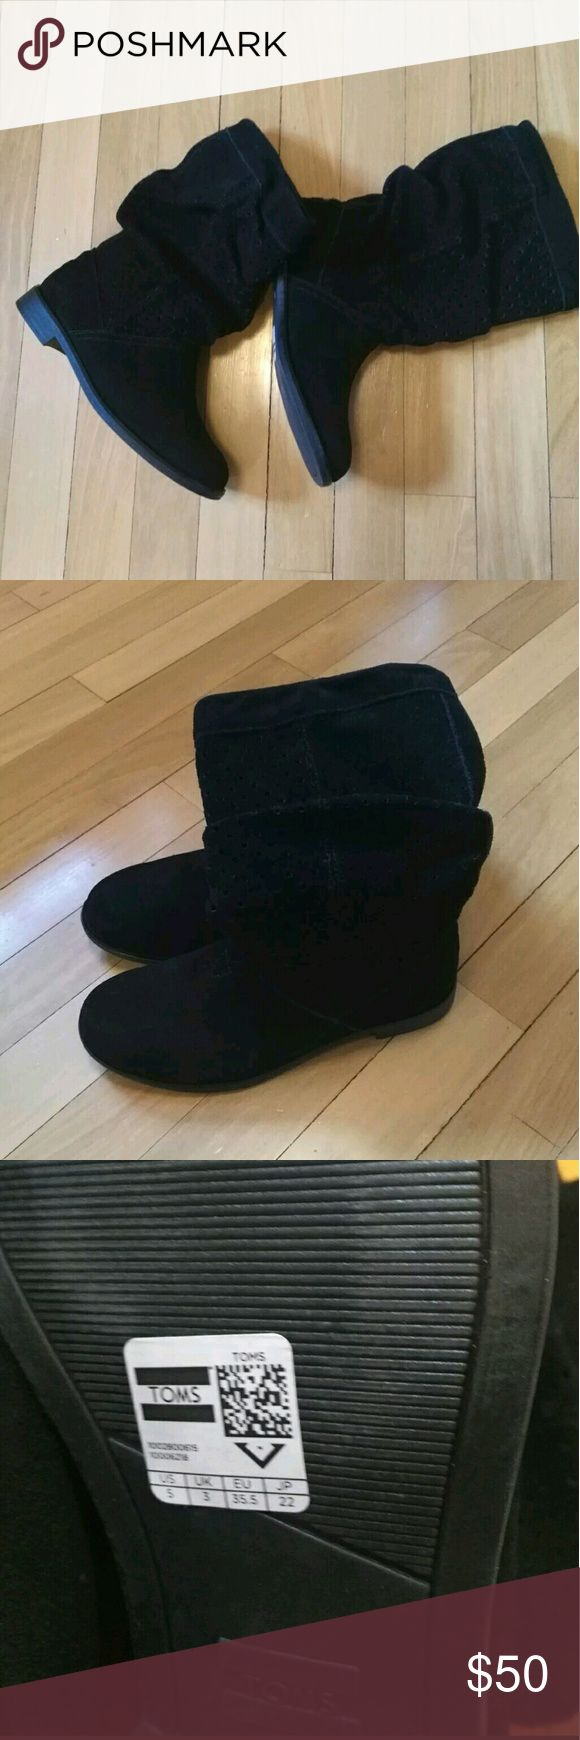 "New Womens Toms ""Serra"" Black Suede boots. New Womens Toms ""Serra"" Black Suede Perforated Slouch Boots Size 5 TOMS Shoes Ankle Boots & Booties"